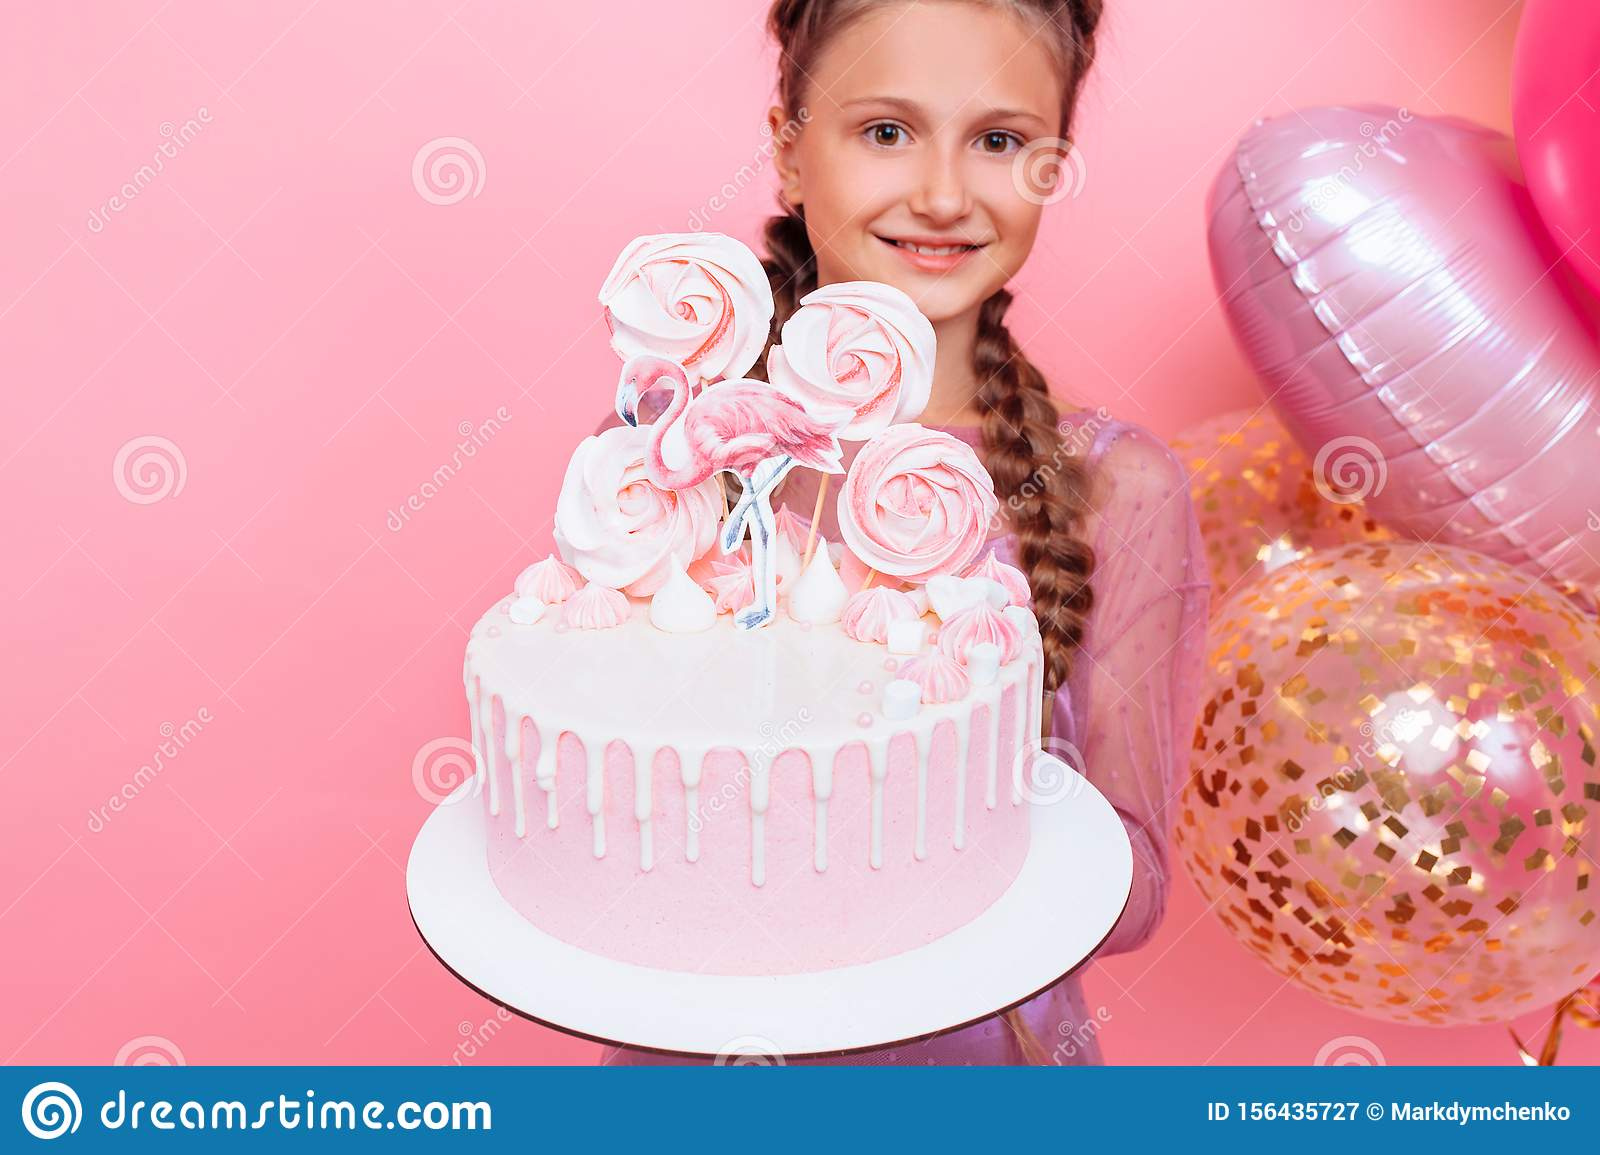 Brilliant A Teenage Girl With Balloons Holds A Cake In Her Hands On A Pink Birthday Cards Printable Opercafe Filternl